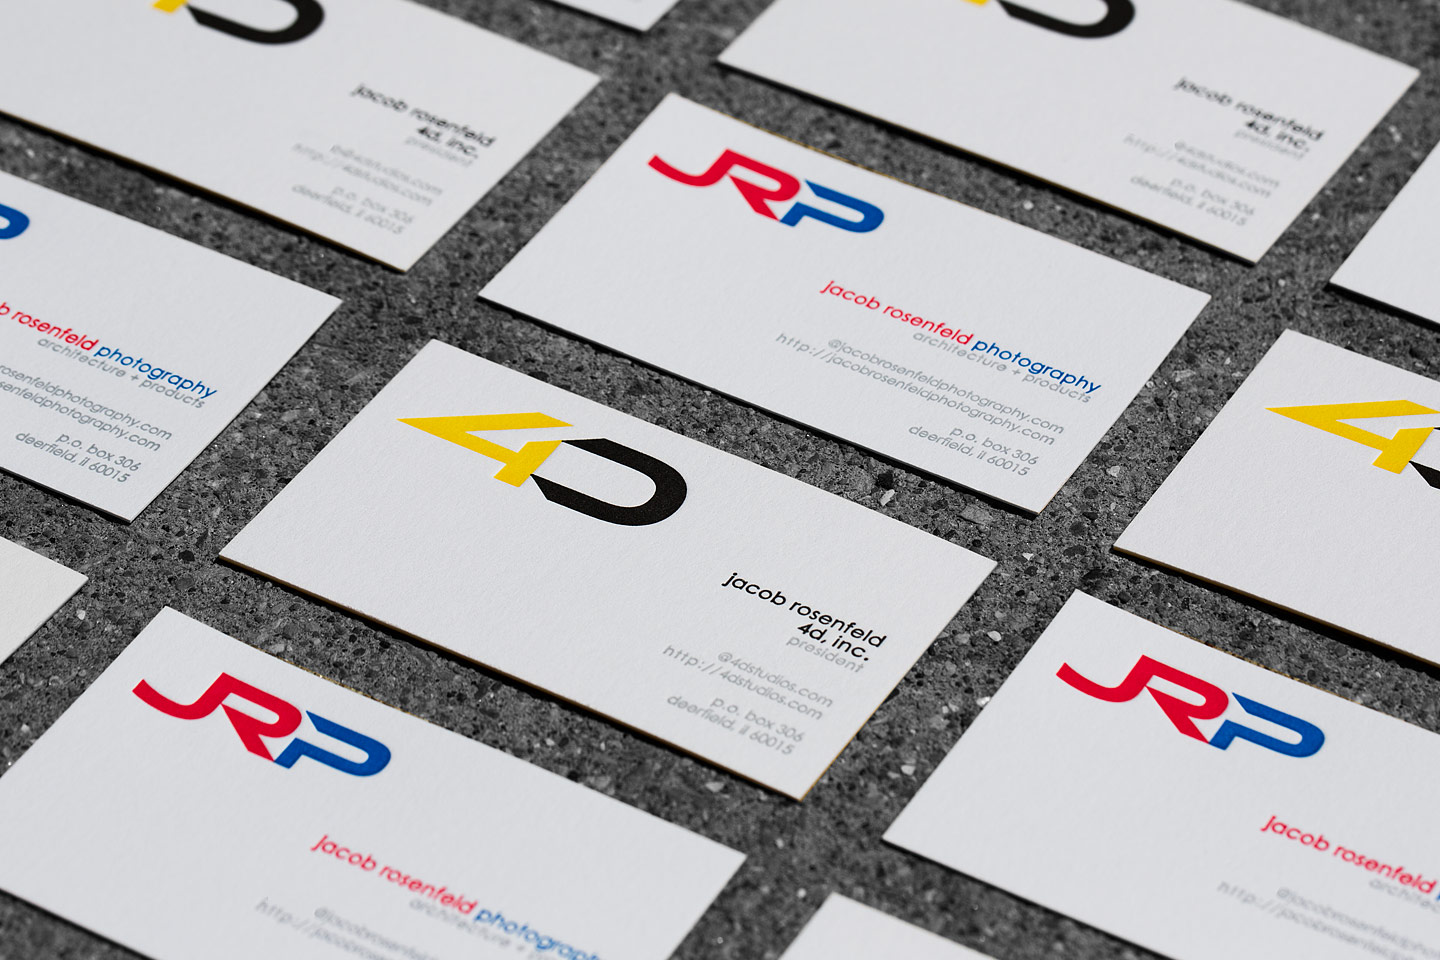 4D and JRP letterpress business cards laid out in an alternating grid